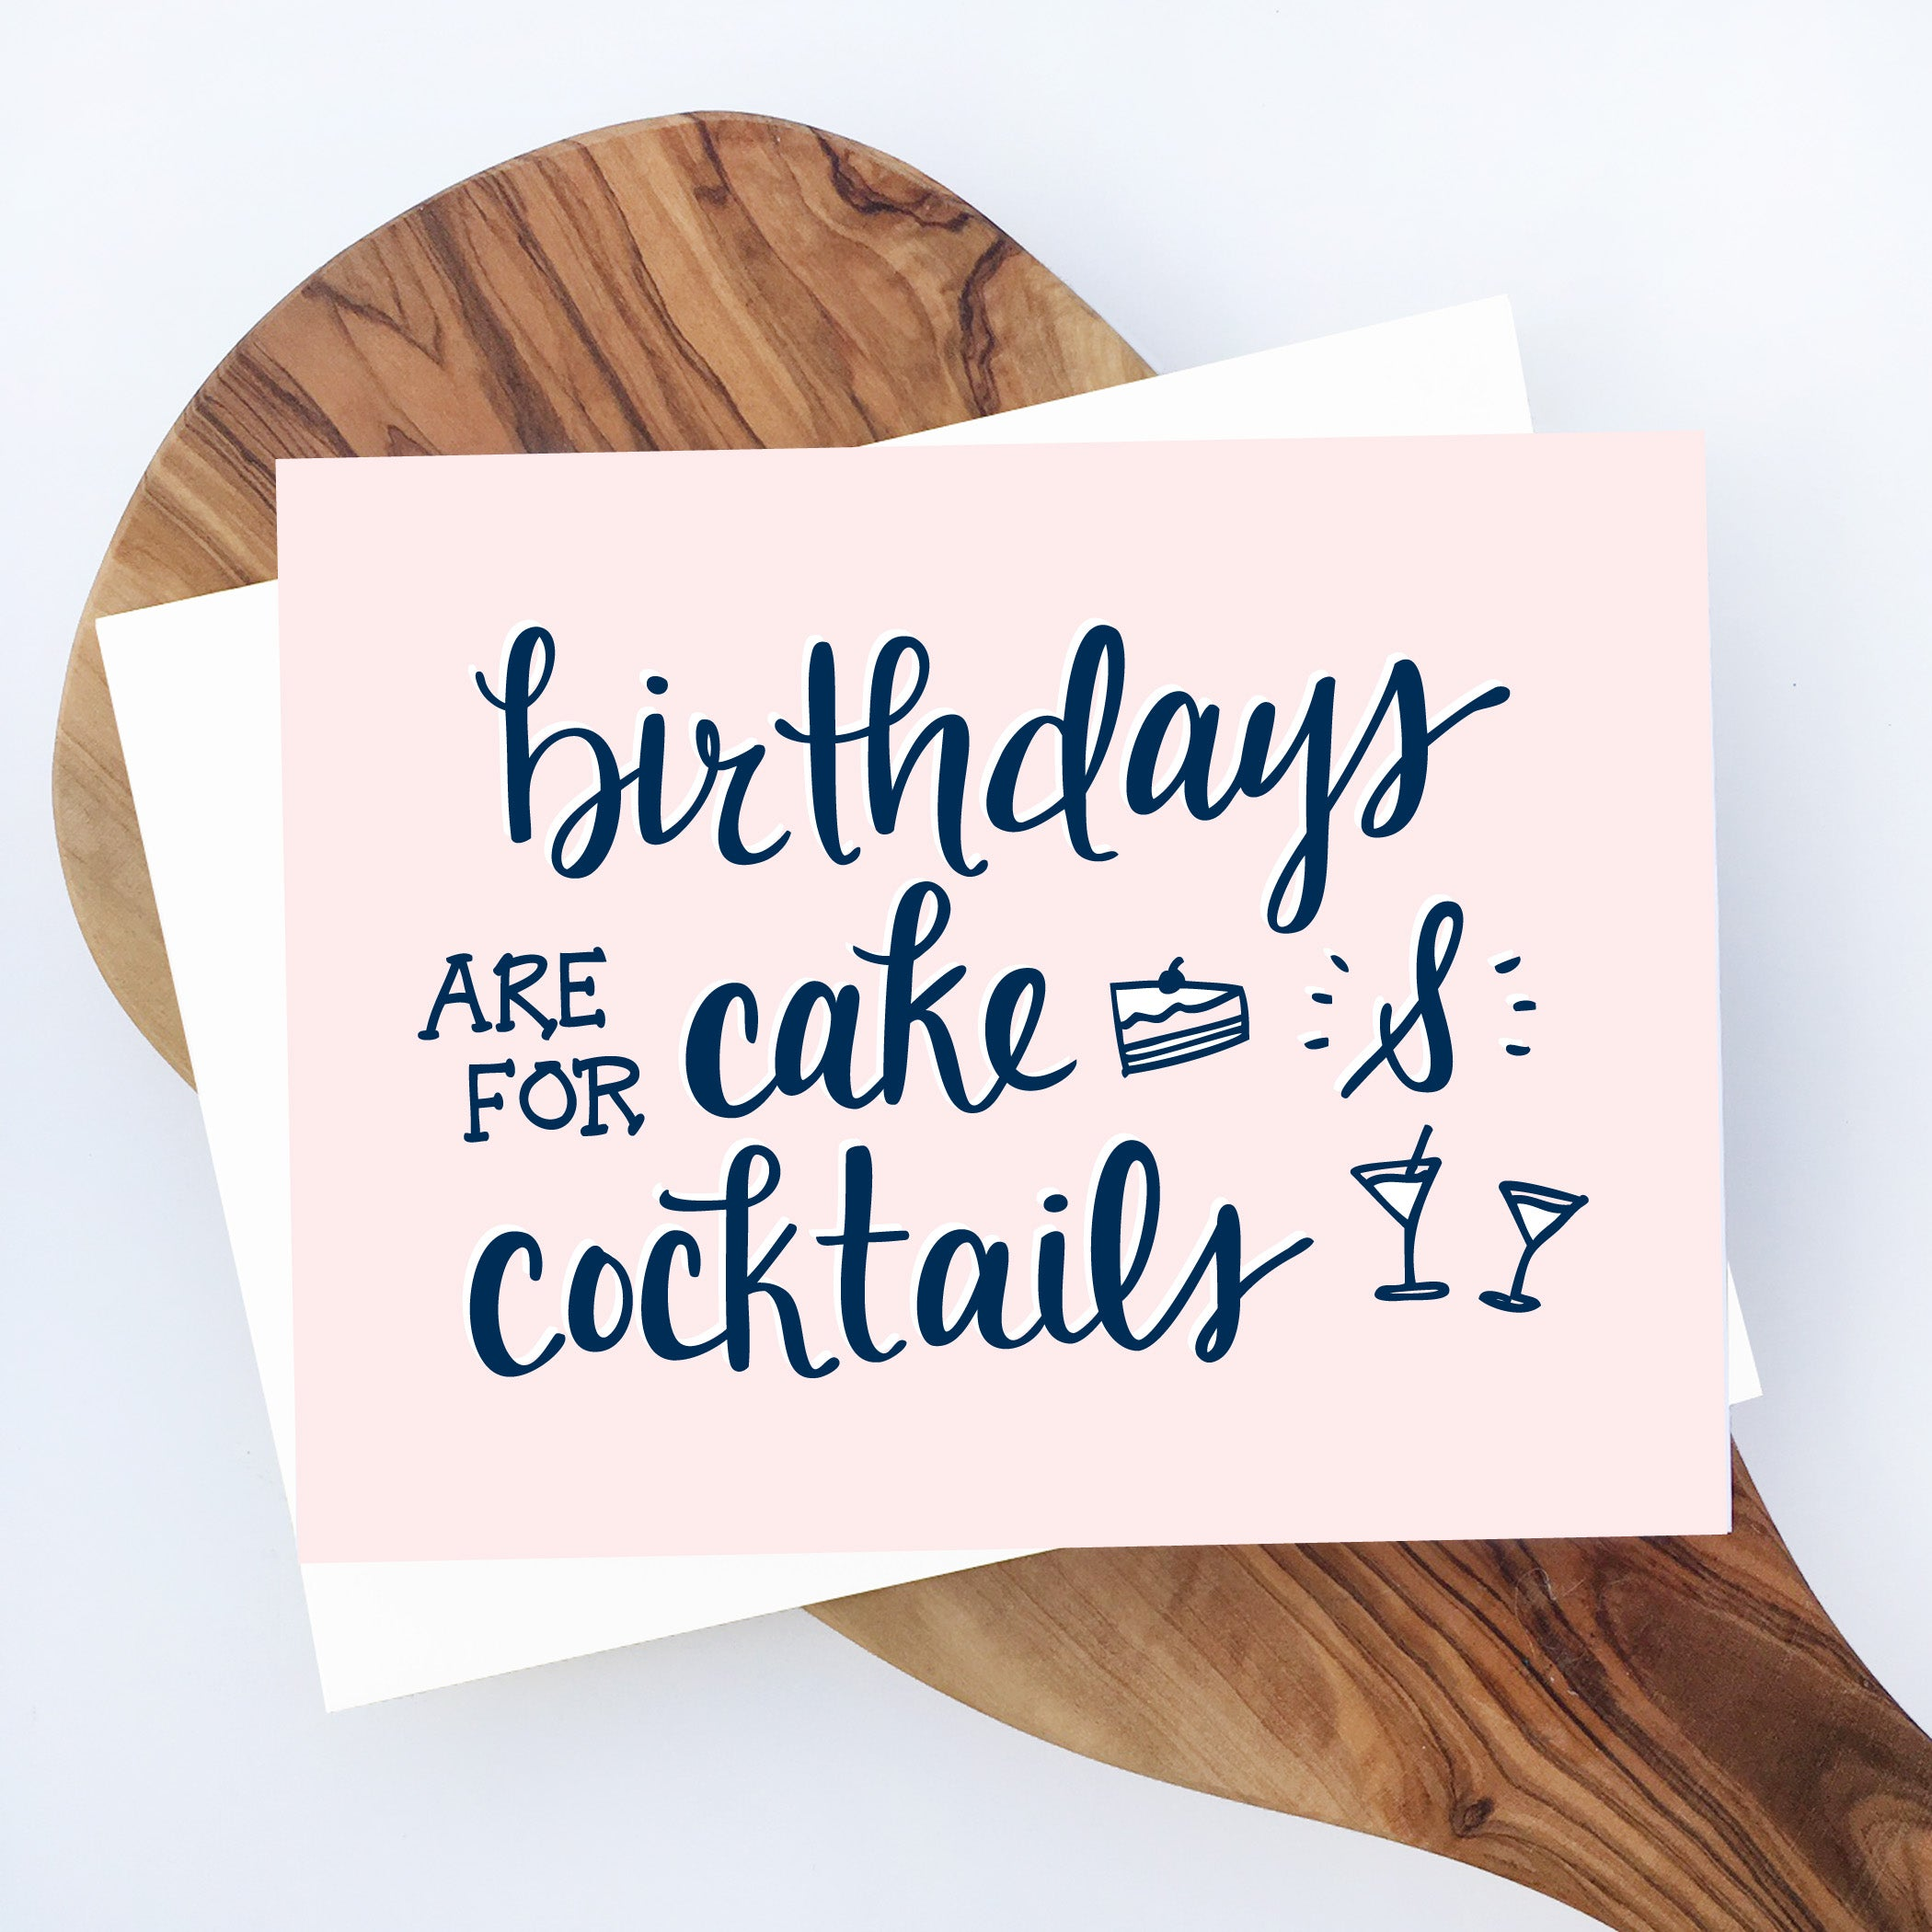 Cake & Cocktails Birthday Card